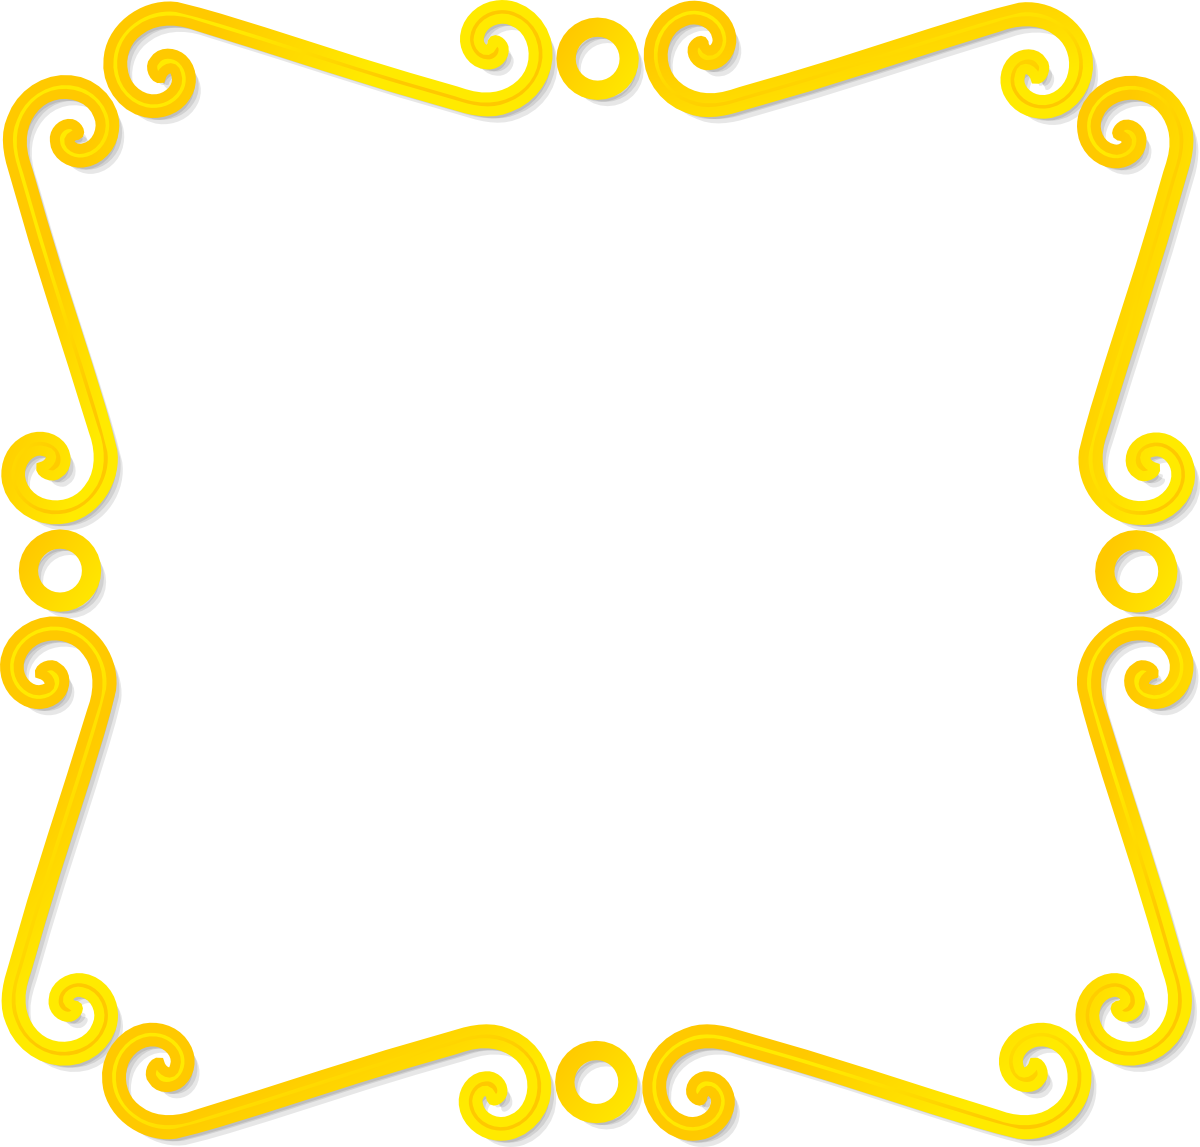 Fancy metallic gold border